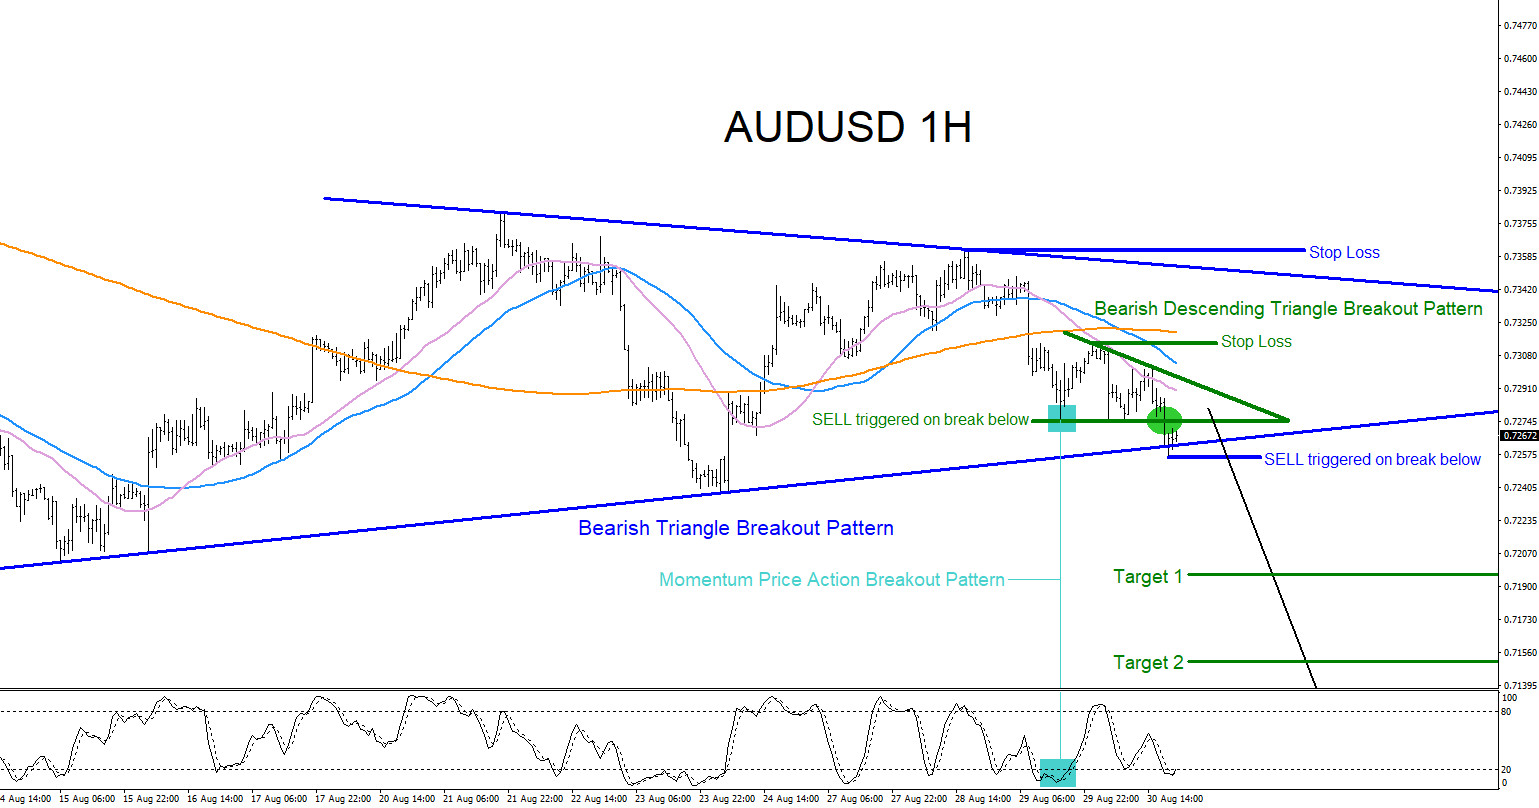 audusd, forex, bullish, bearish, technical analysis, pattern, patterns